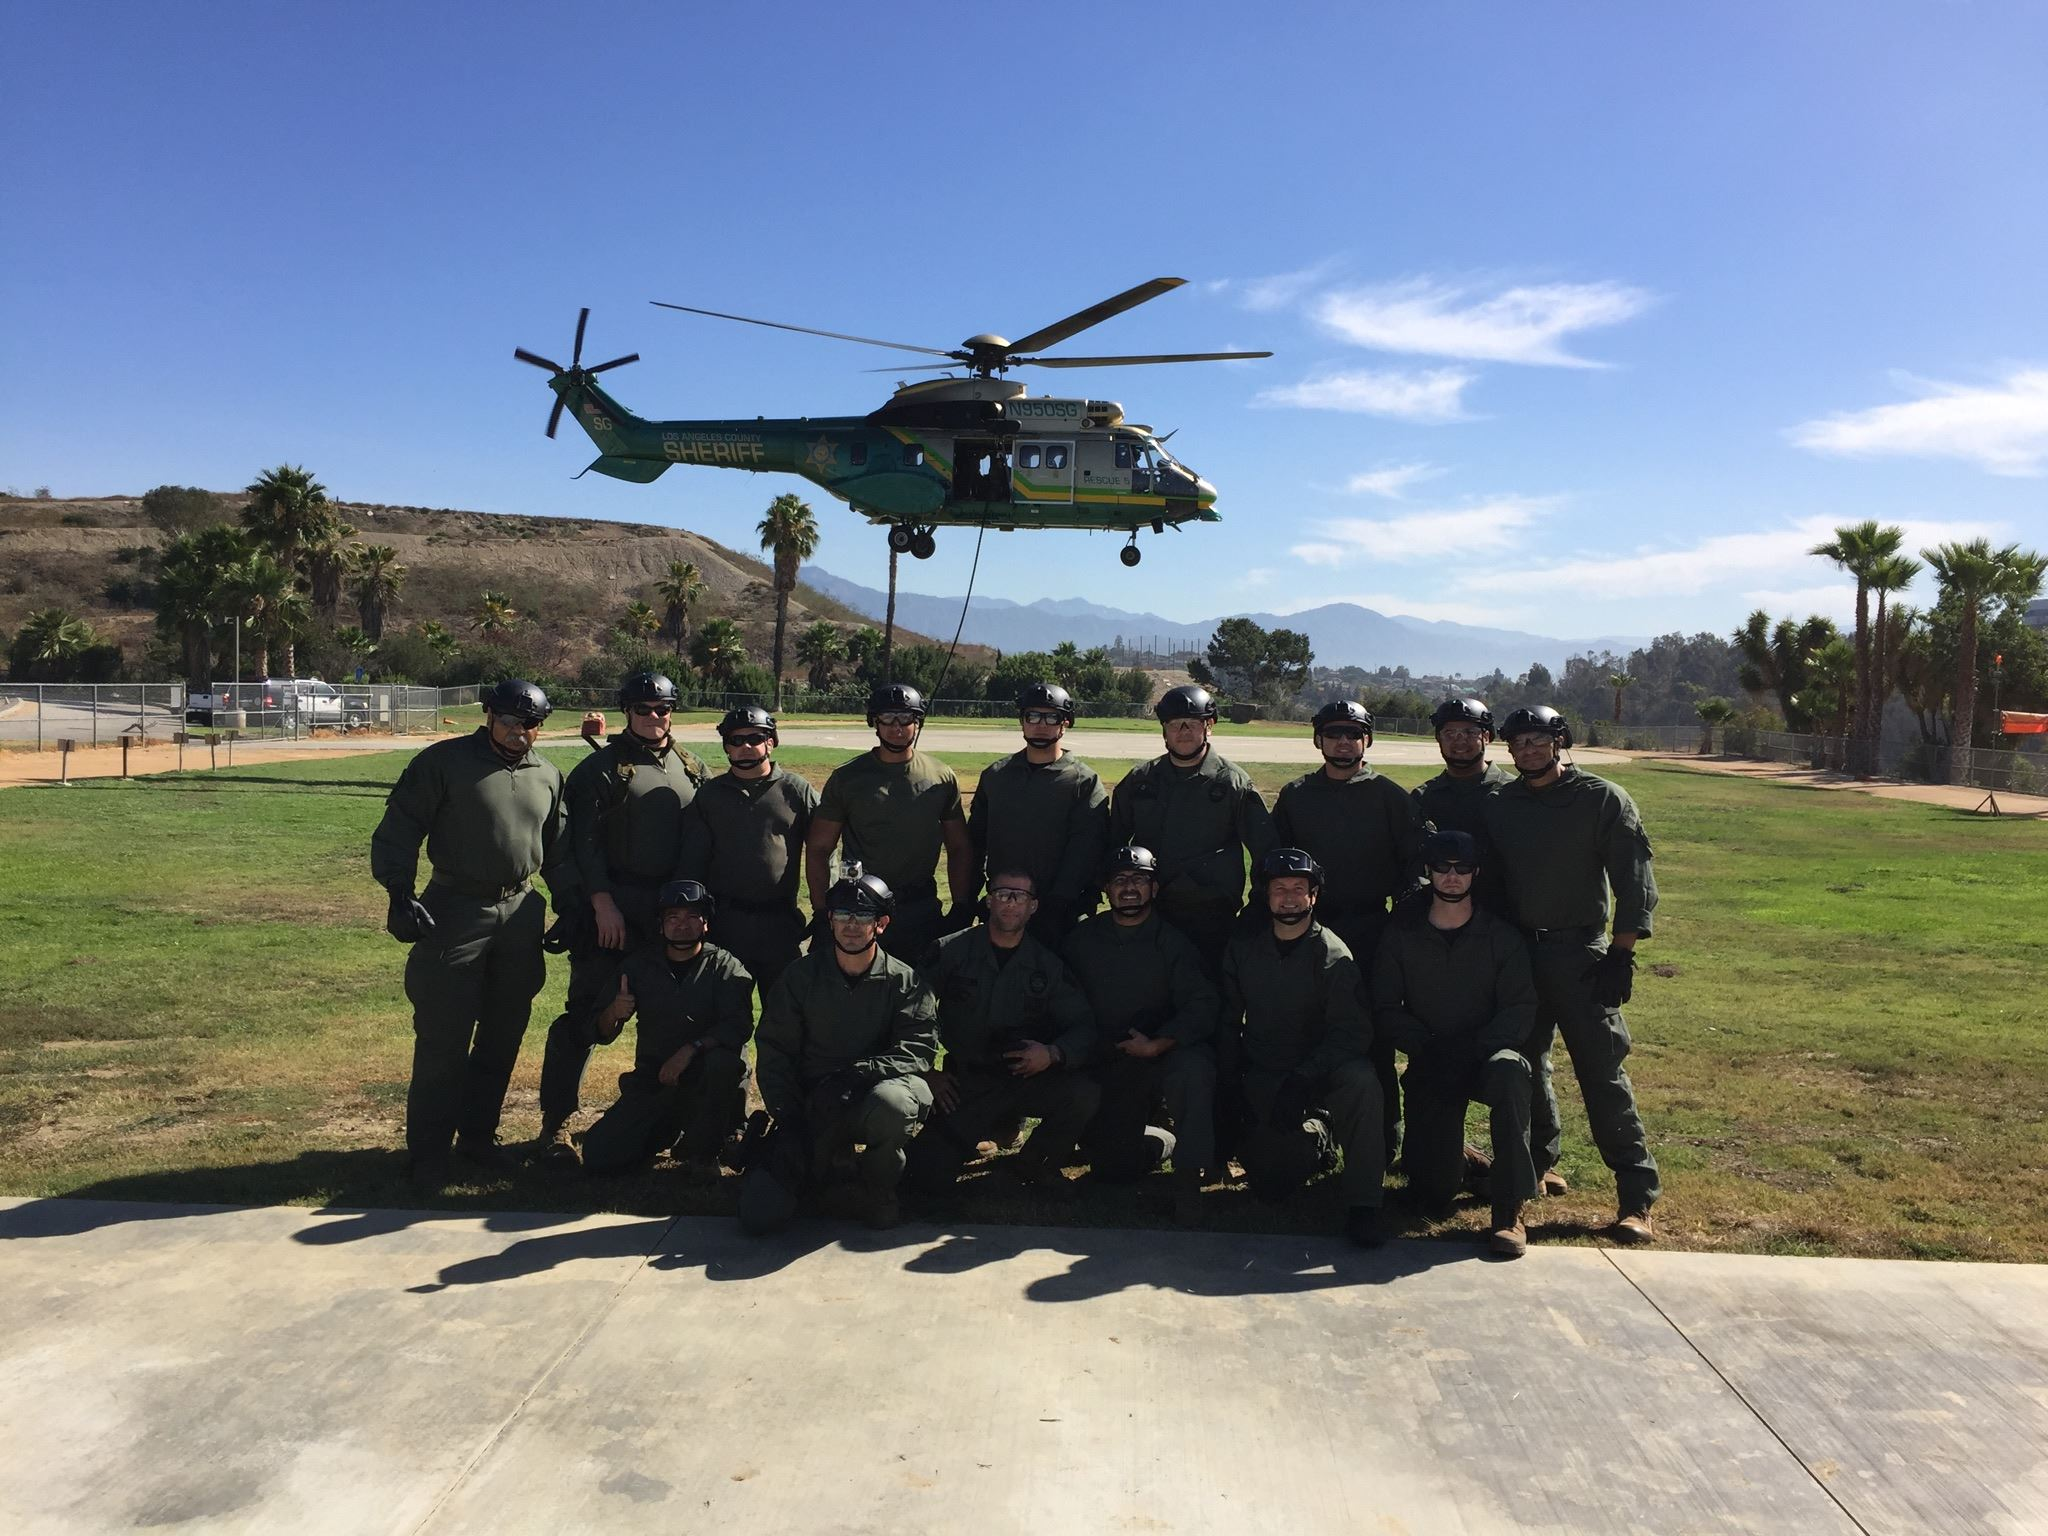 SWAT at Helicopter Day